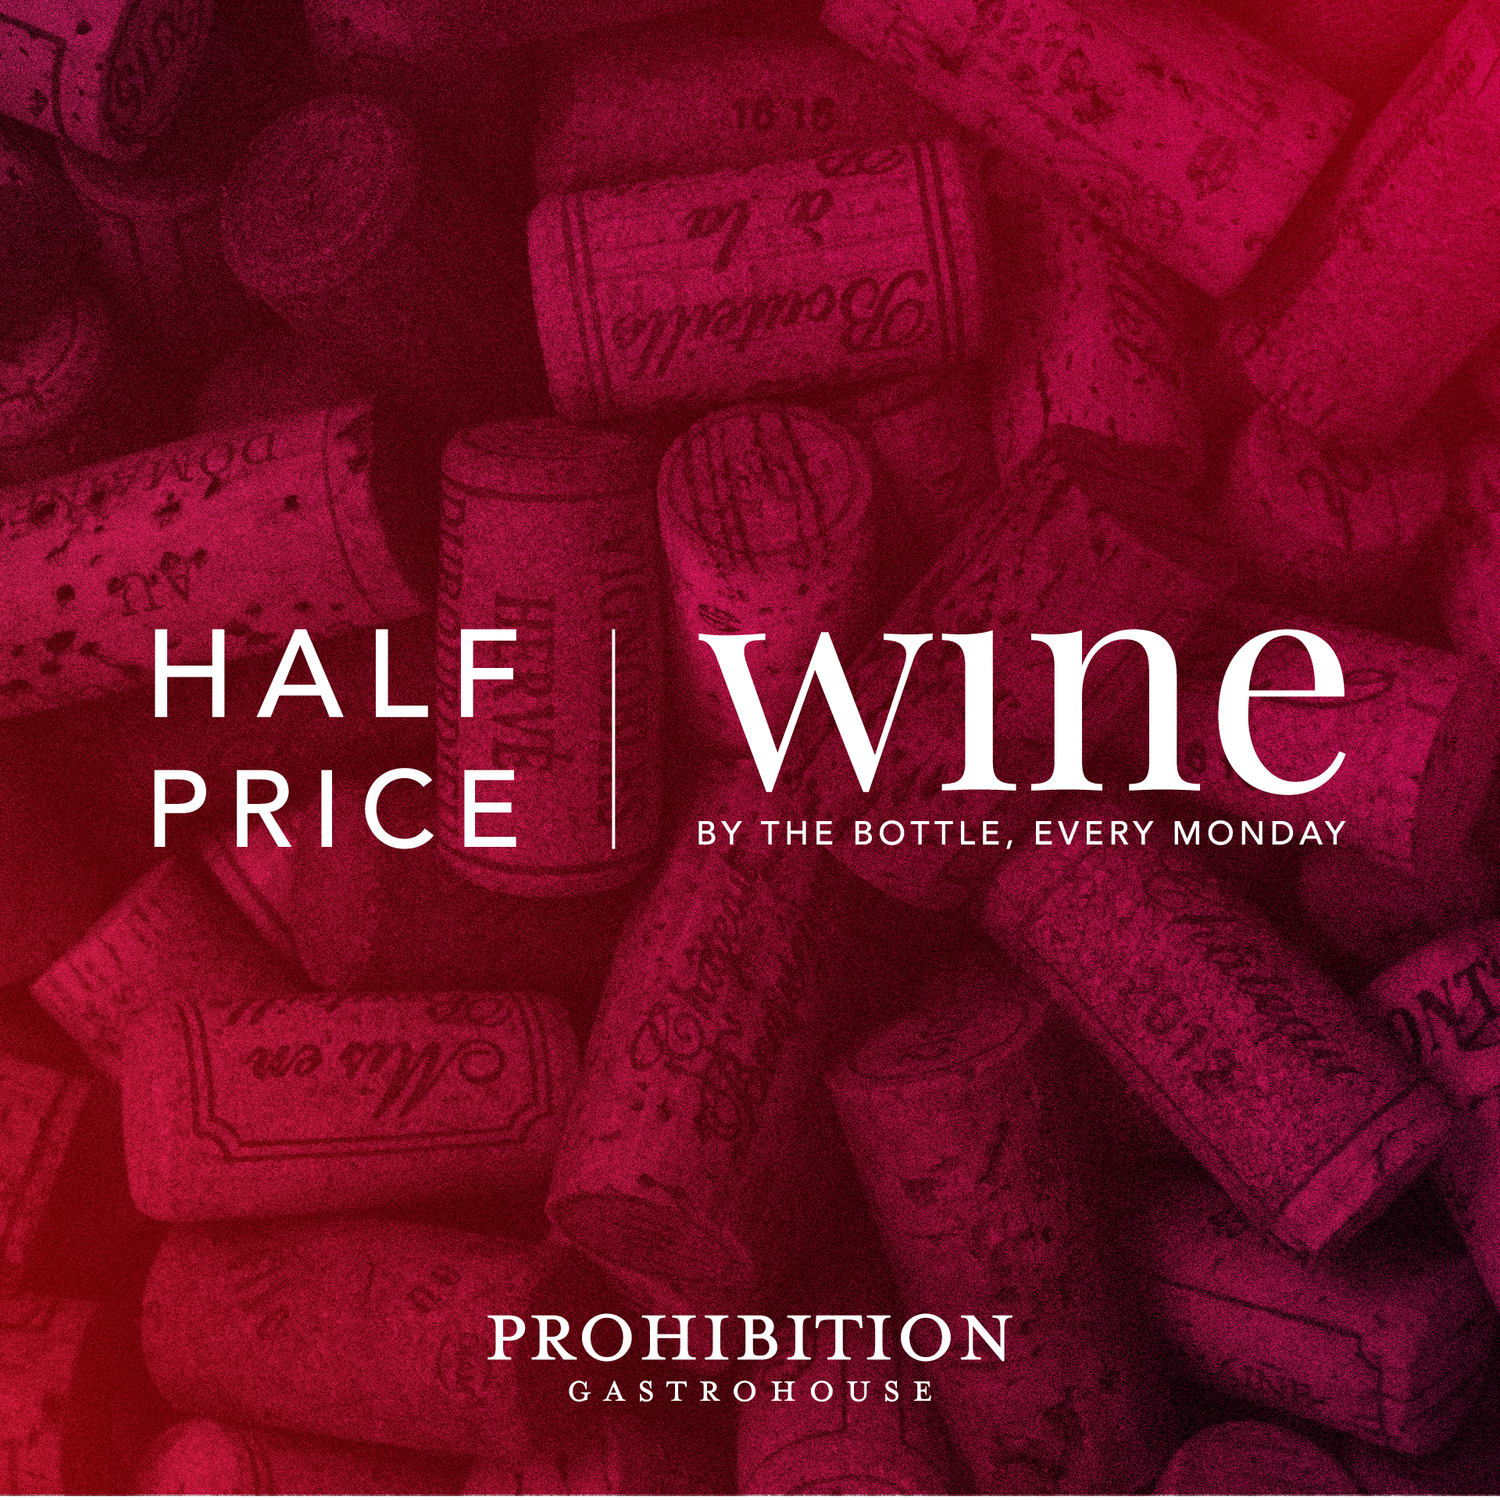 MONDAY HALF PRICE WINE INSTA 1.png